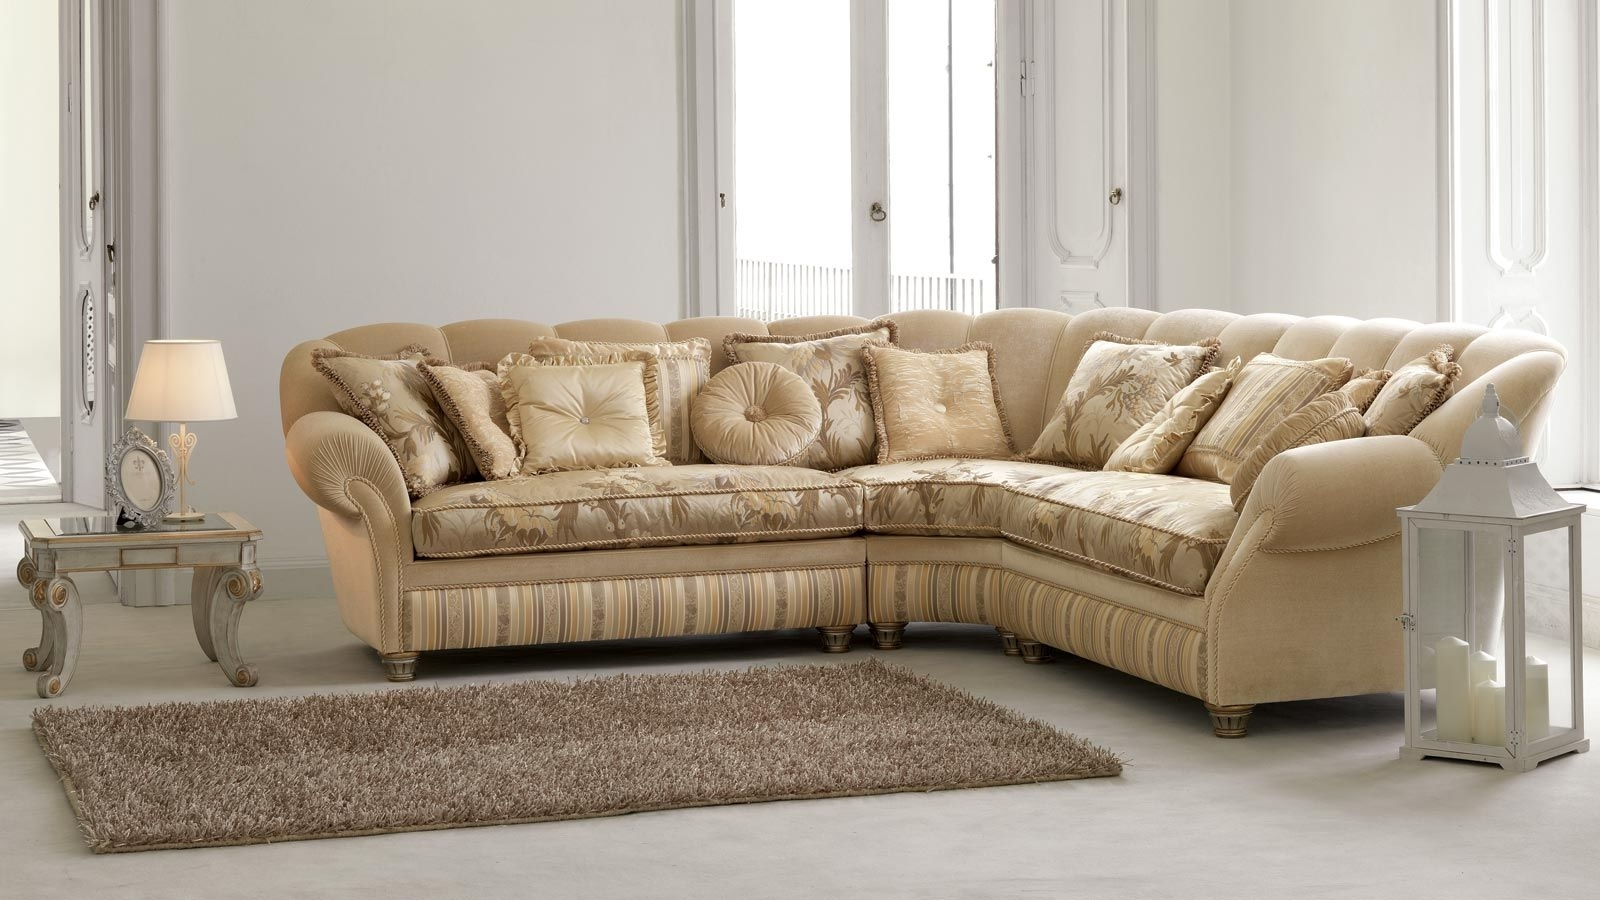 Most Current Furniture : Sectional Sofa 80 X 80 Corner Sofa Extension Sectional In 80X80 Sectional Sofas (View 14 of 20)